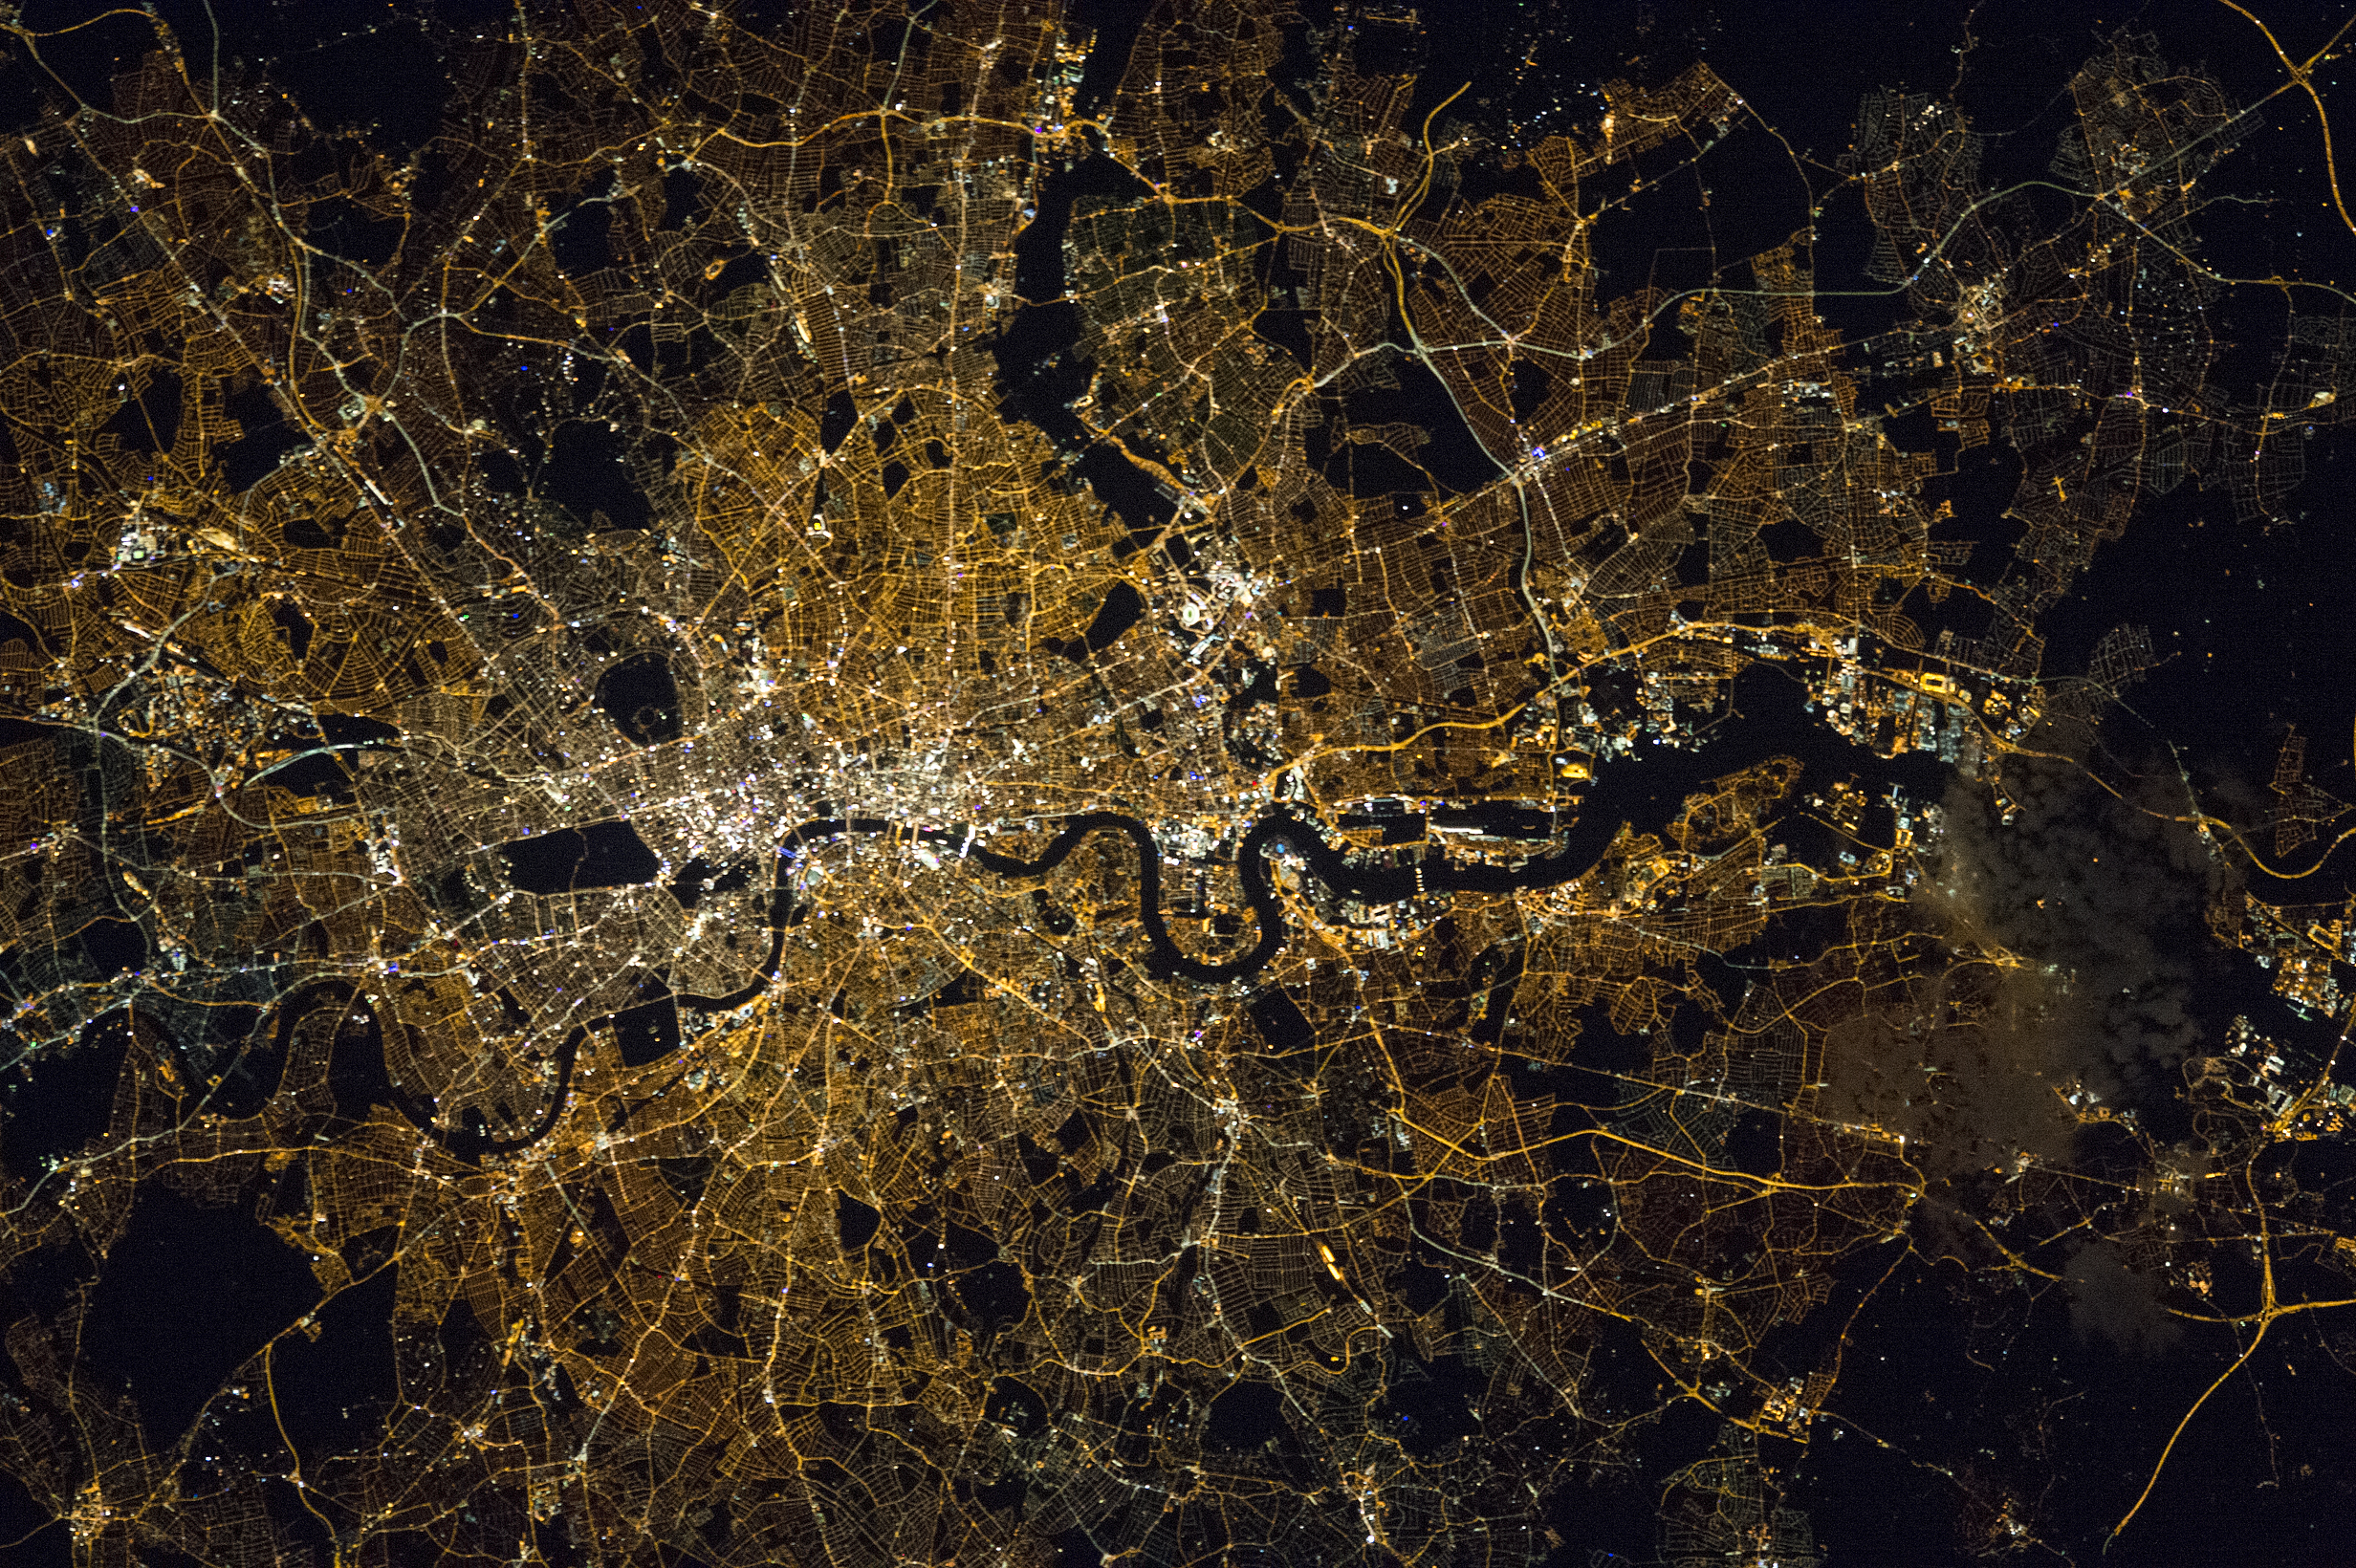 London bei Nacht (Image courtesy of the Earth Science and Remote Sensing Unit, NASA Johnson Space Center)